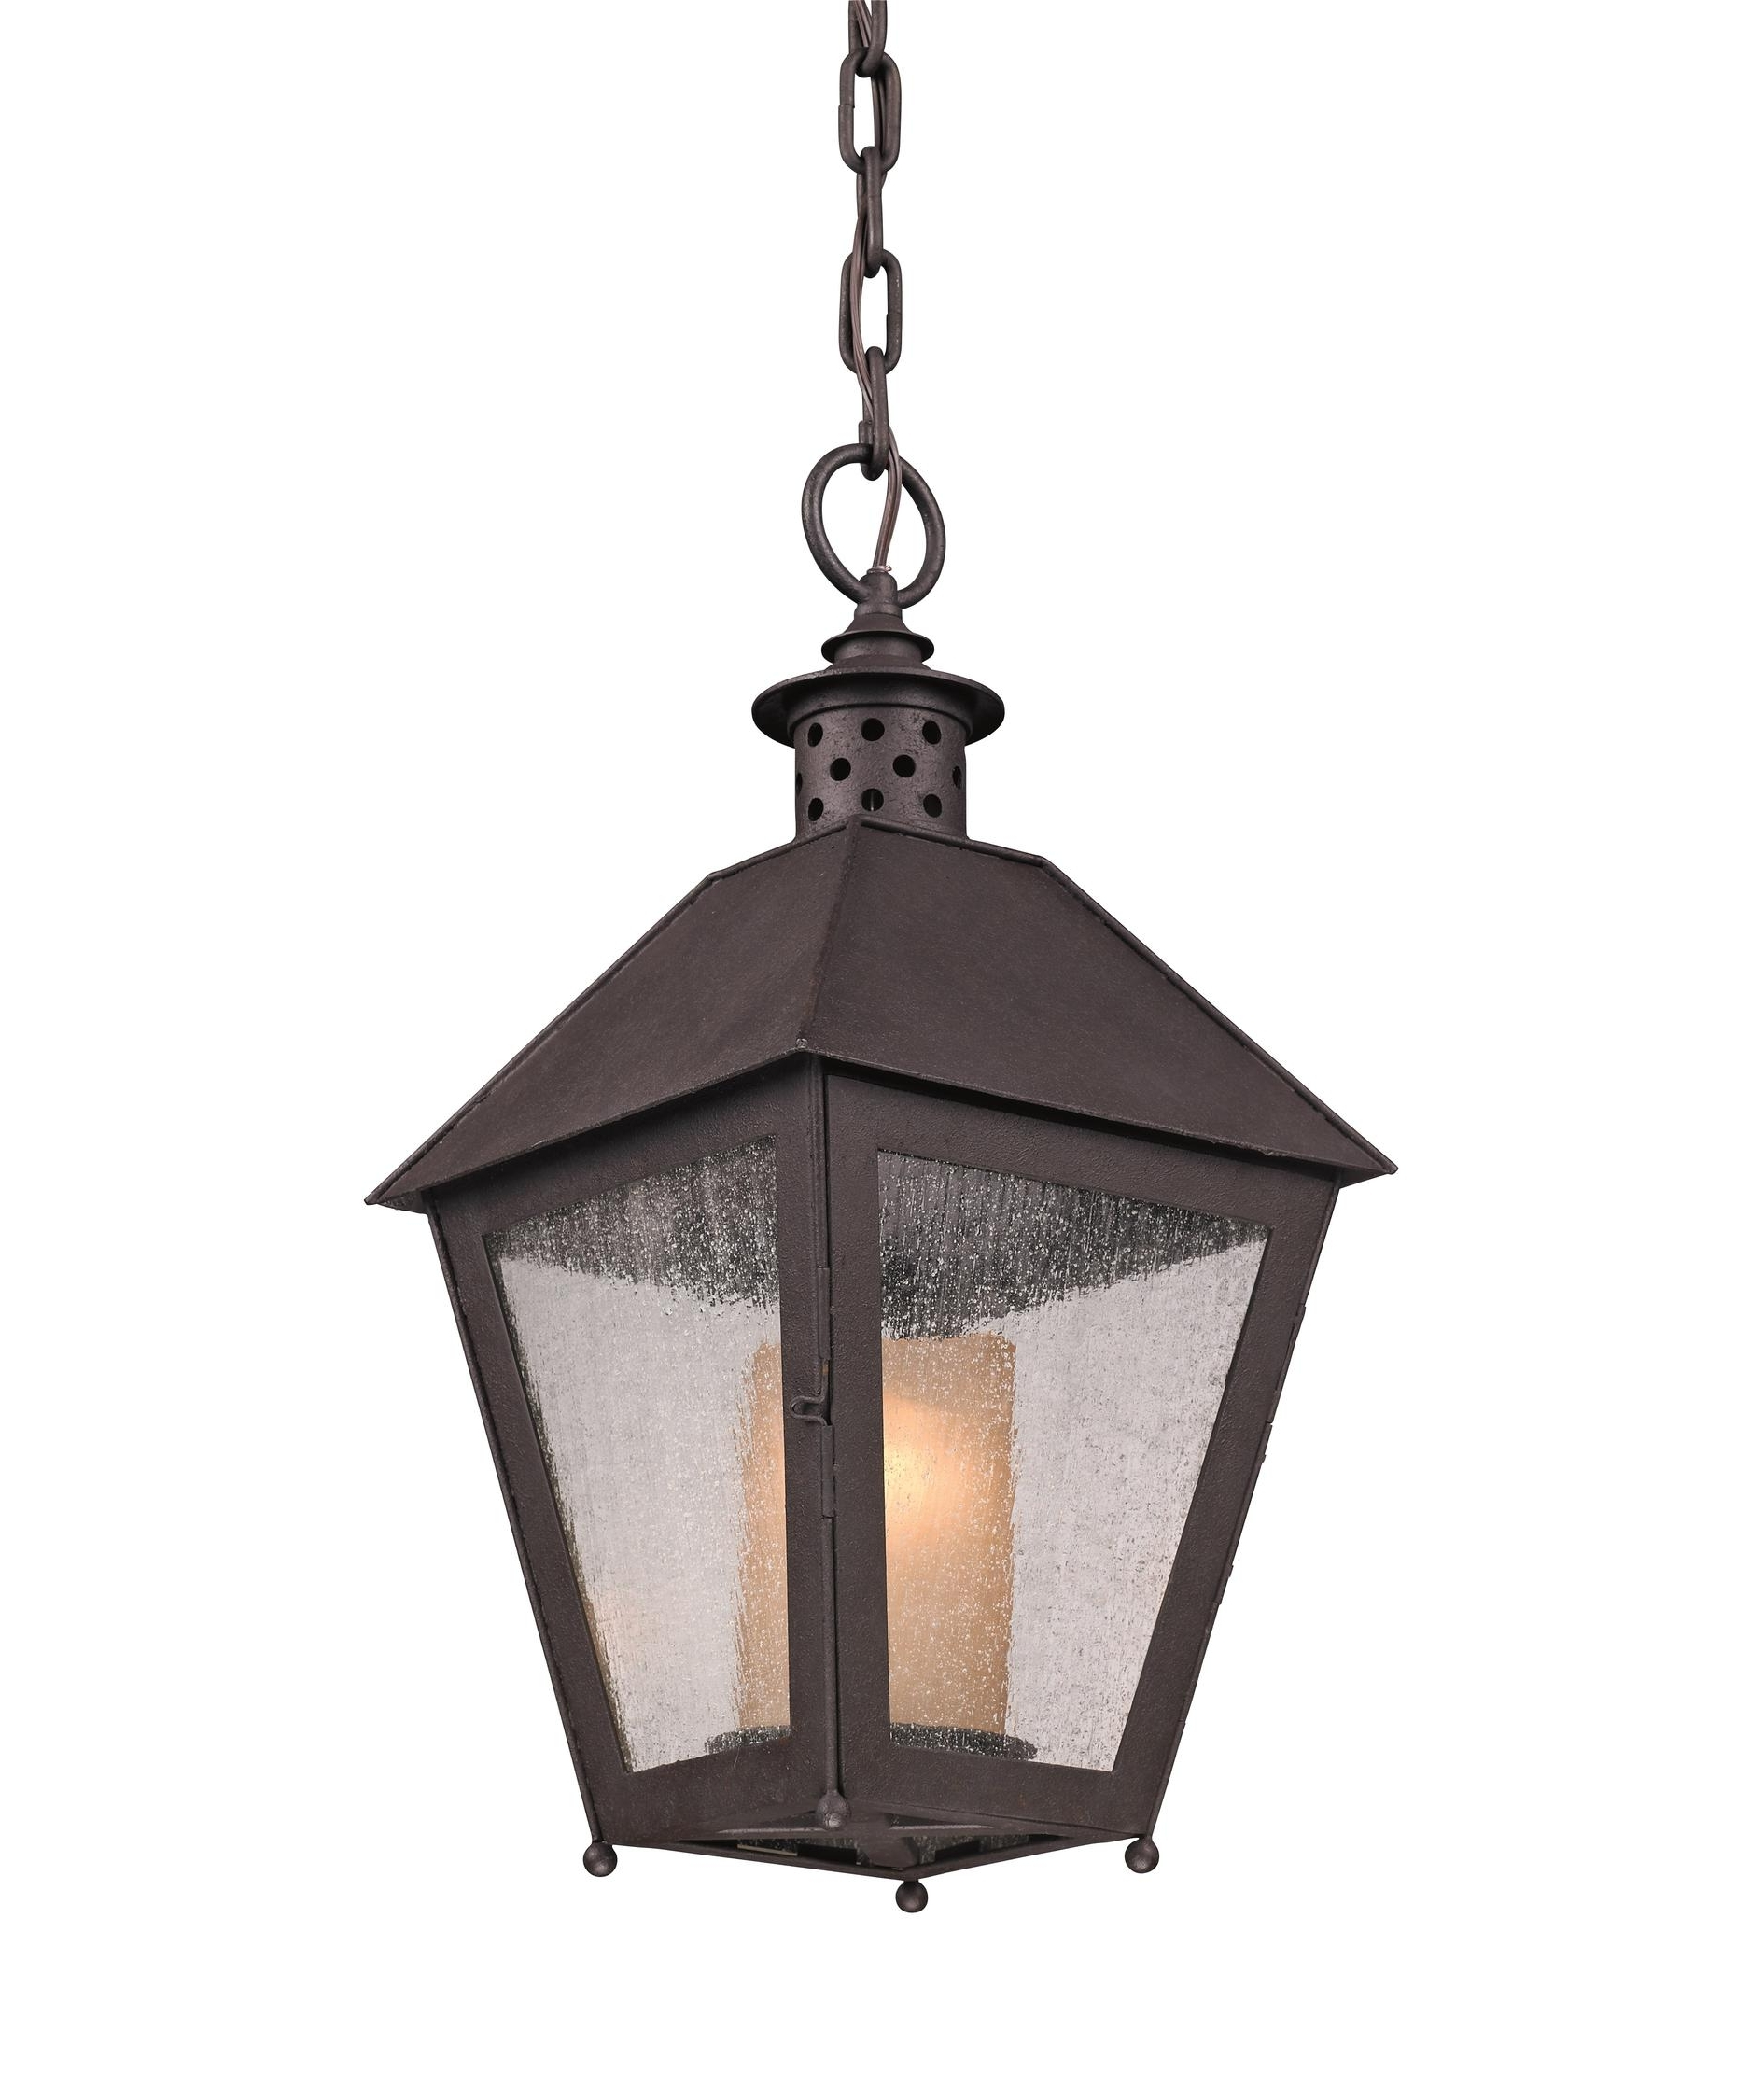 Troy Lighting F3297 Sagamore 10 Inch Wide 1 Light Outdoor Hanging Regarding Well Liked Outdoor Hanging Lanterns (View 19 of 20)